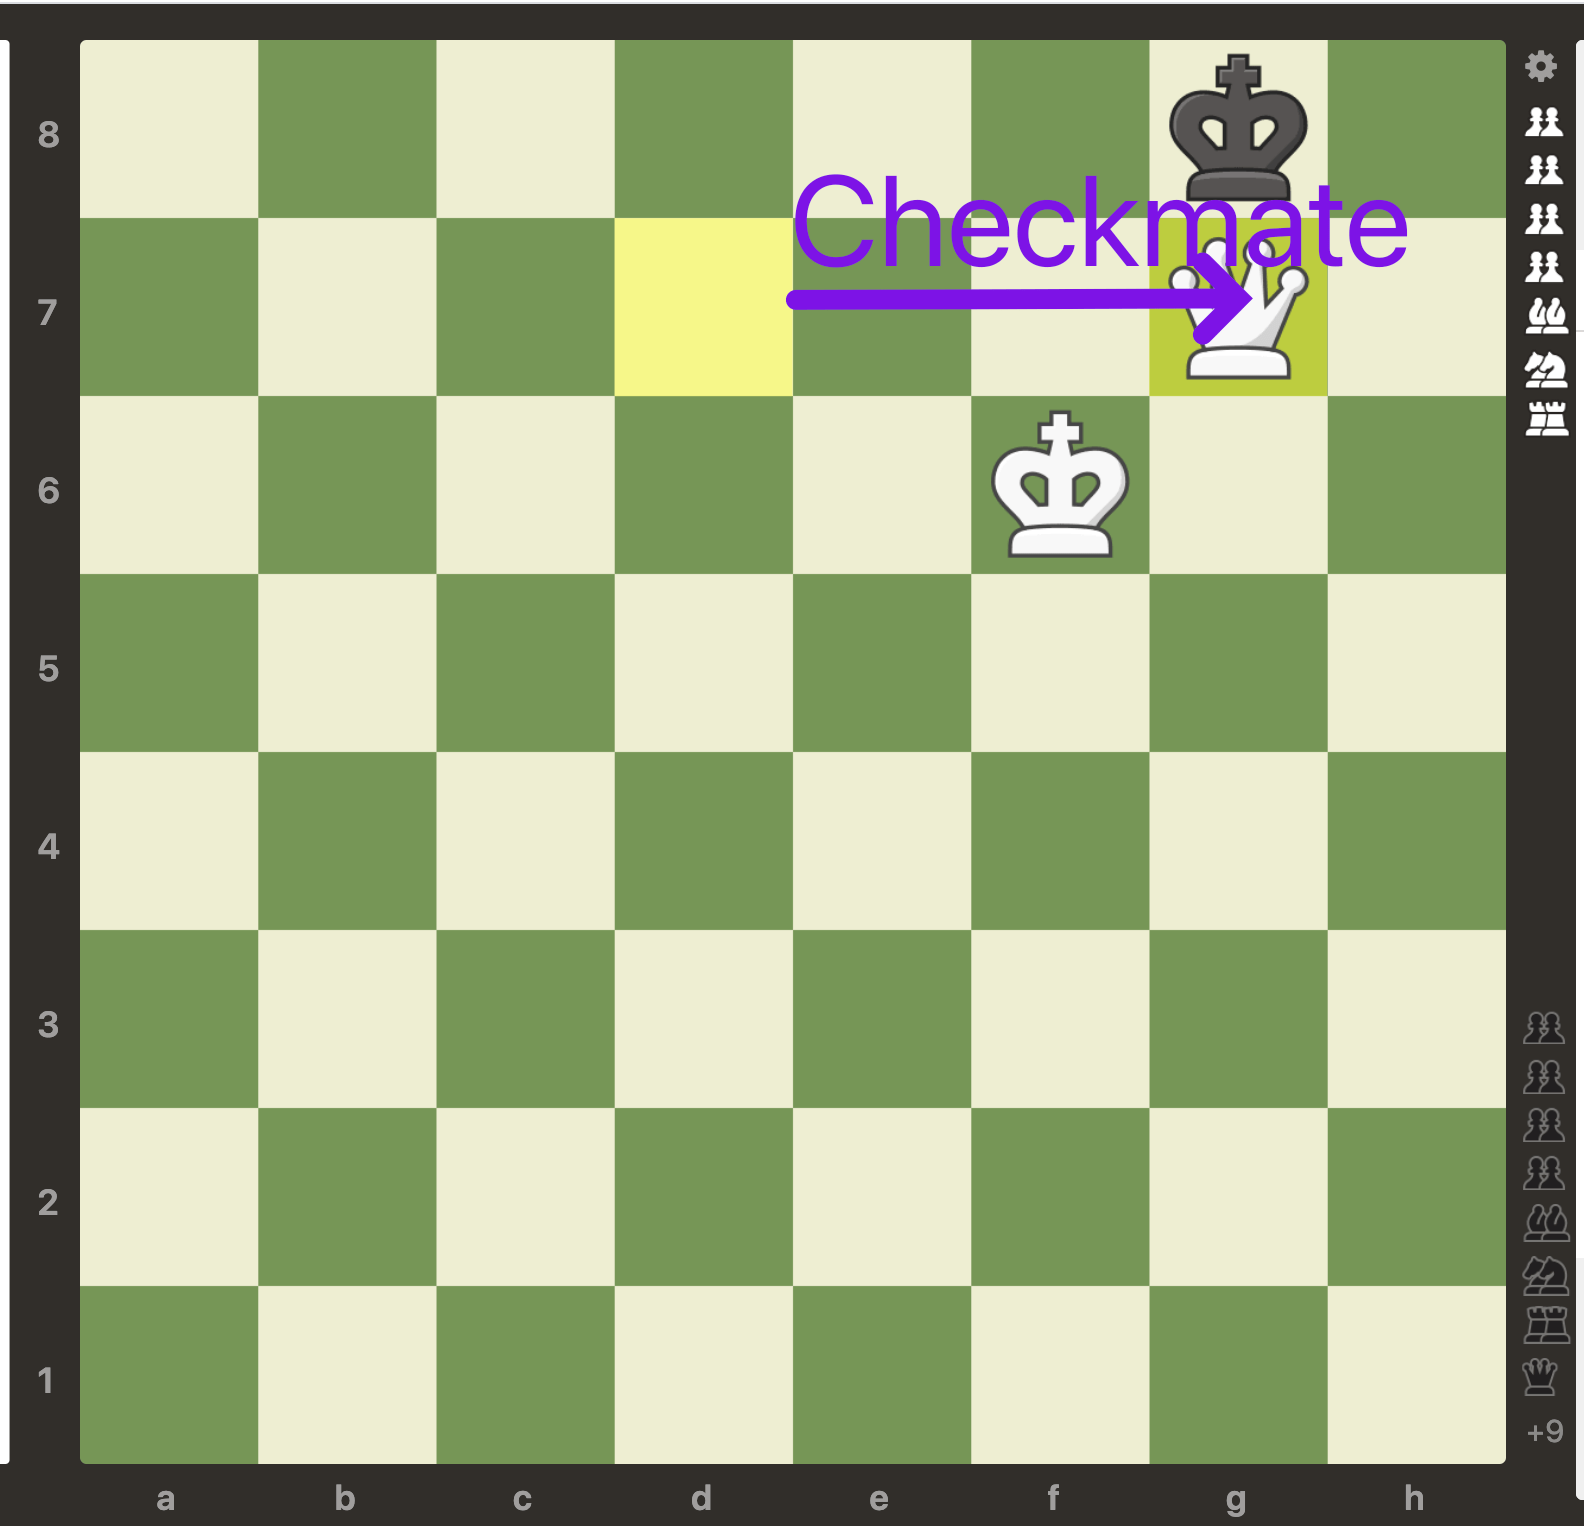 7.-Checkmate